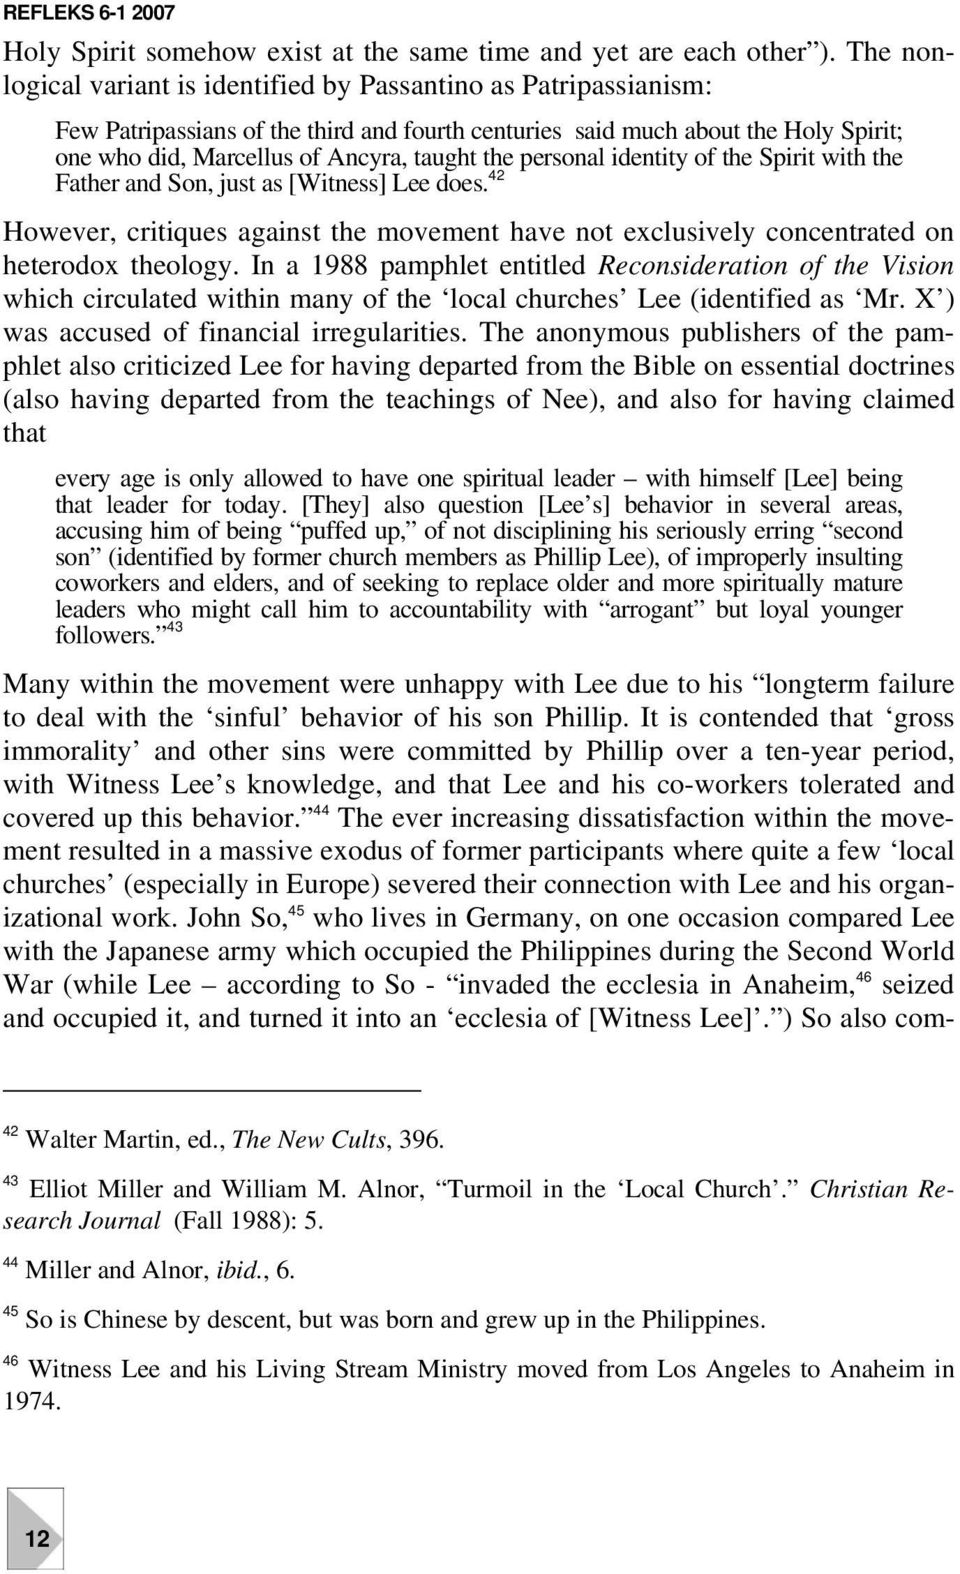 the personal identity of the Spirit with the Father and Son, just as [Witness] Lee does. 42 However, critiques against the movement have not exclusively concentrated on heterodox theology.